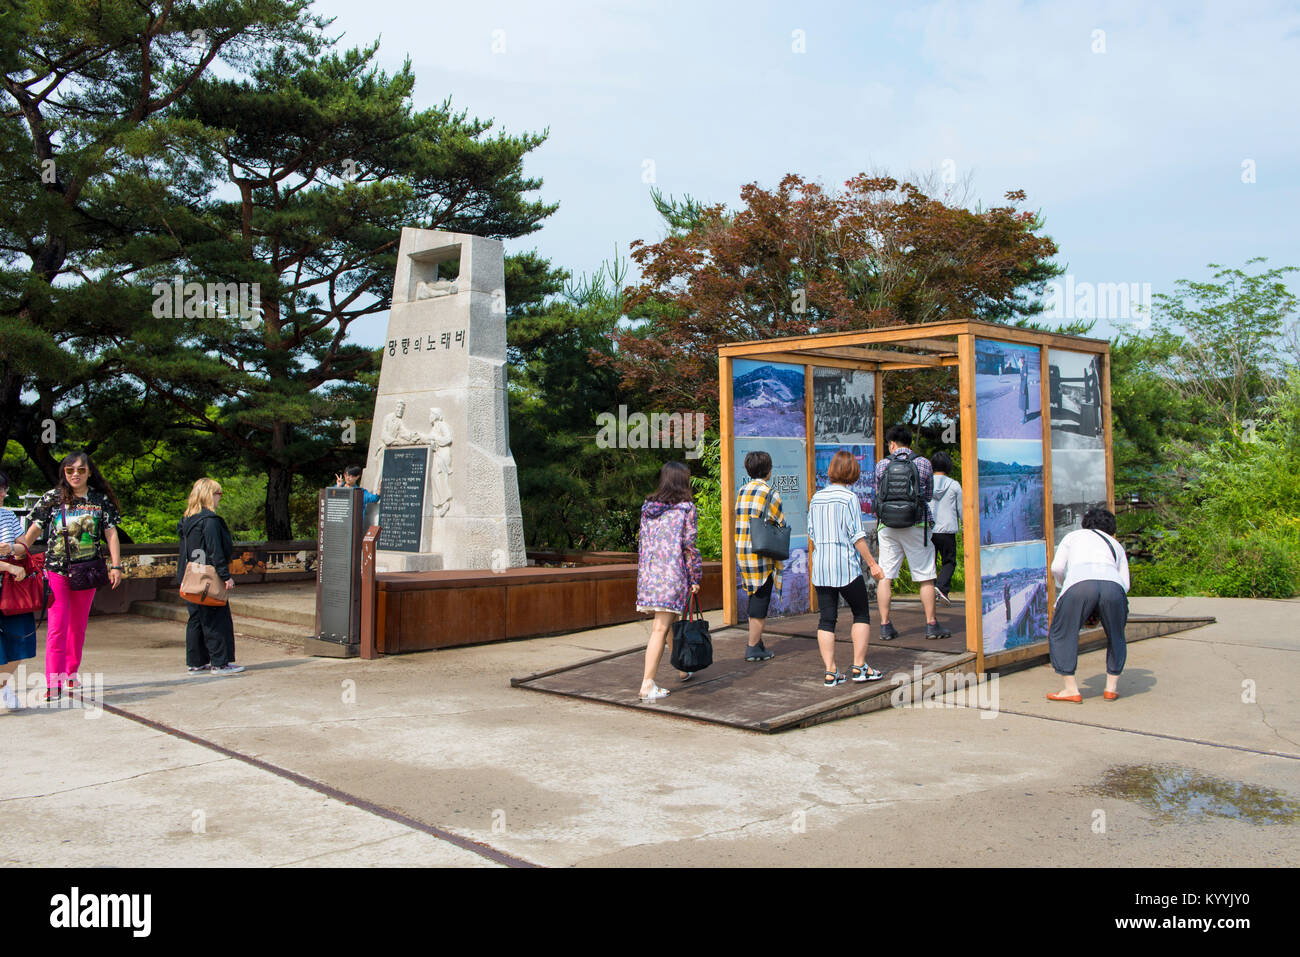 Tourists looking at exhibits from the Korean War at the DMZ in South Korea - Stock Image